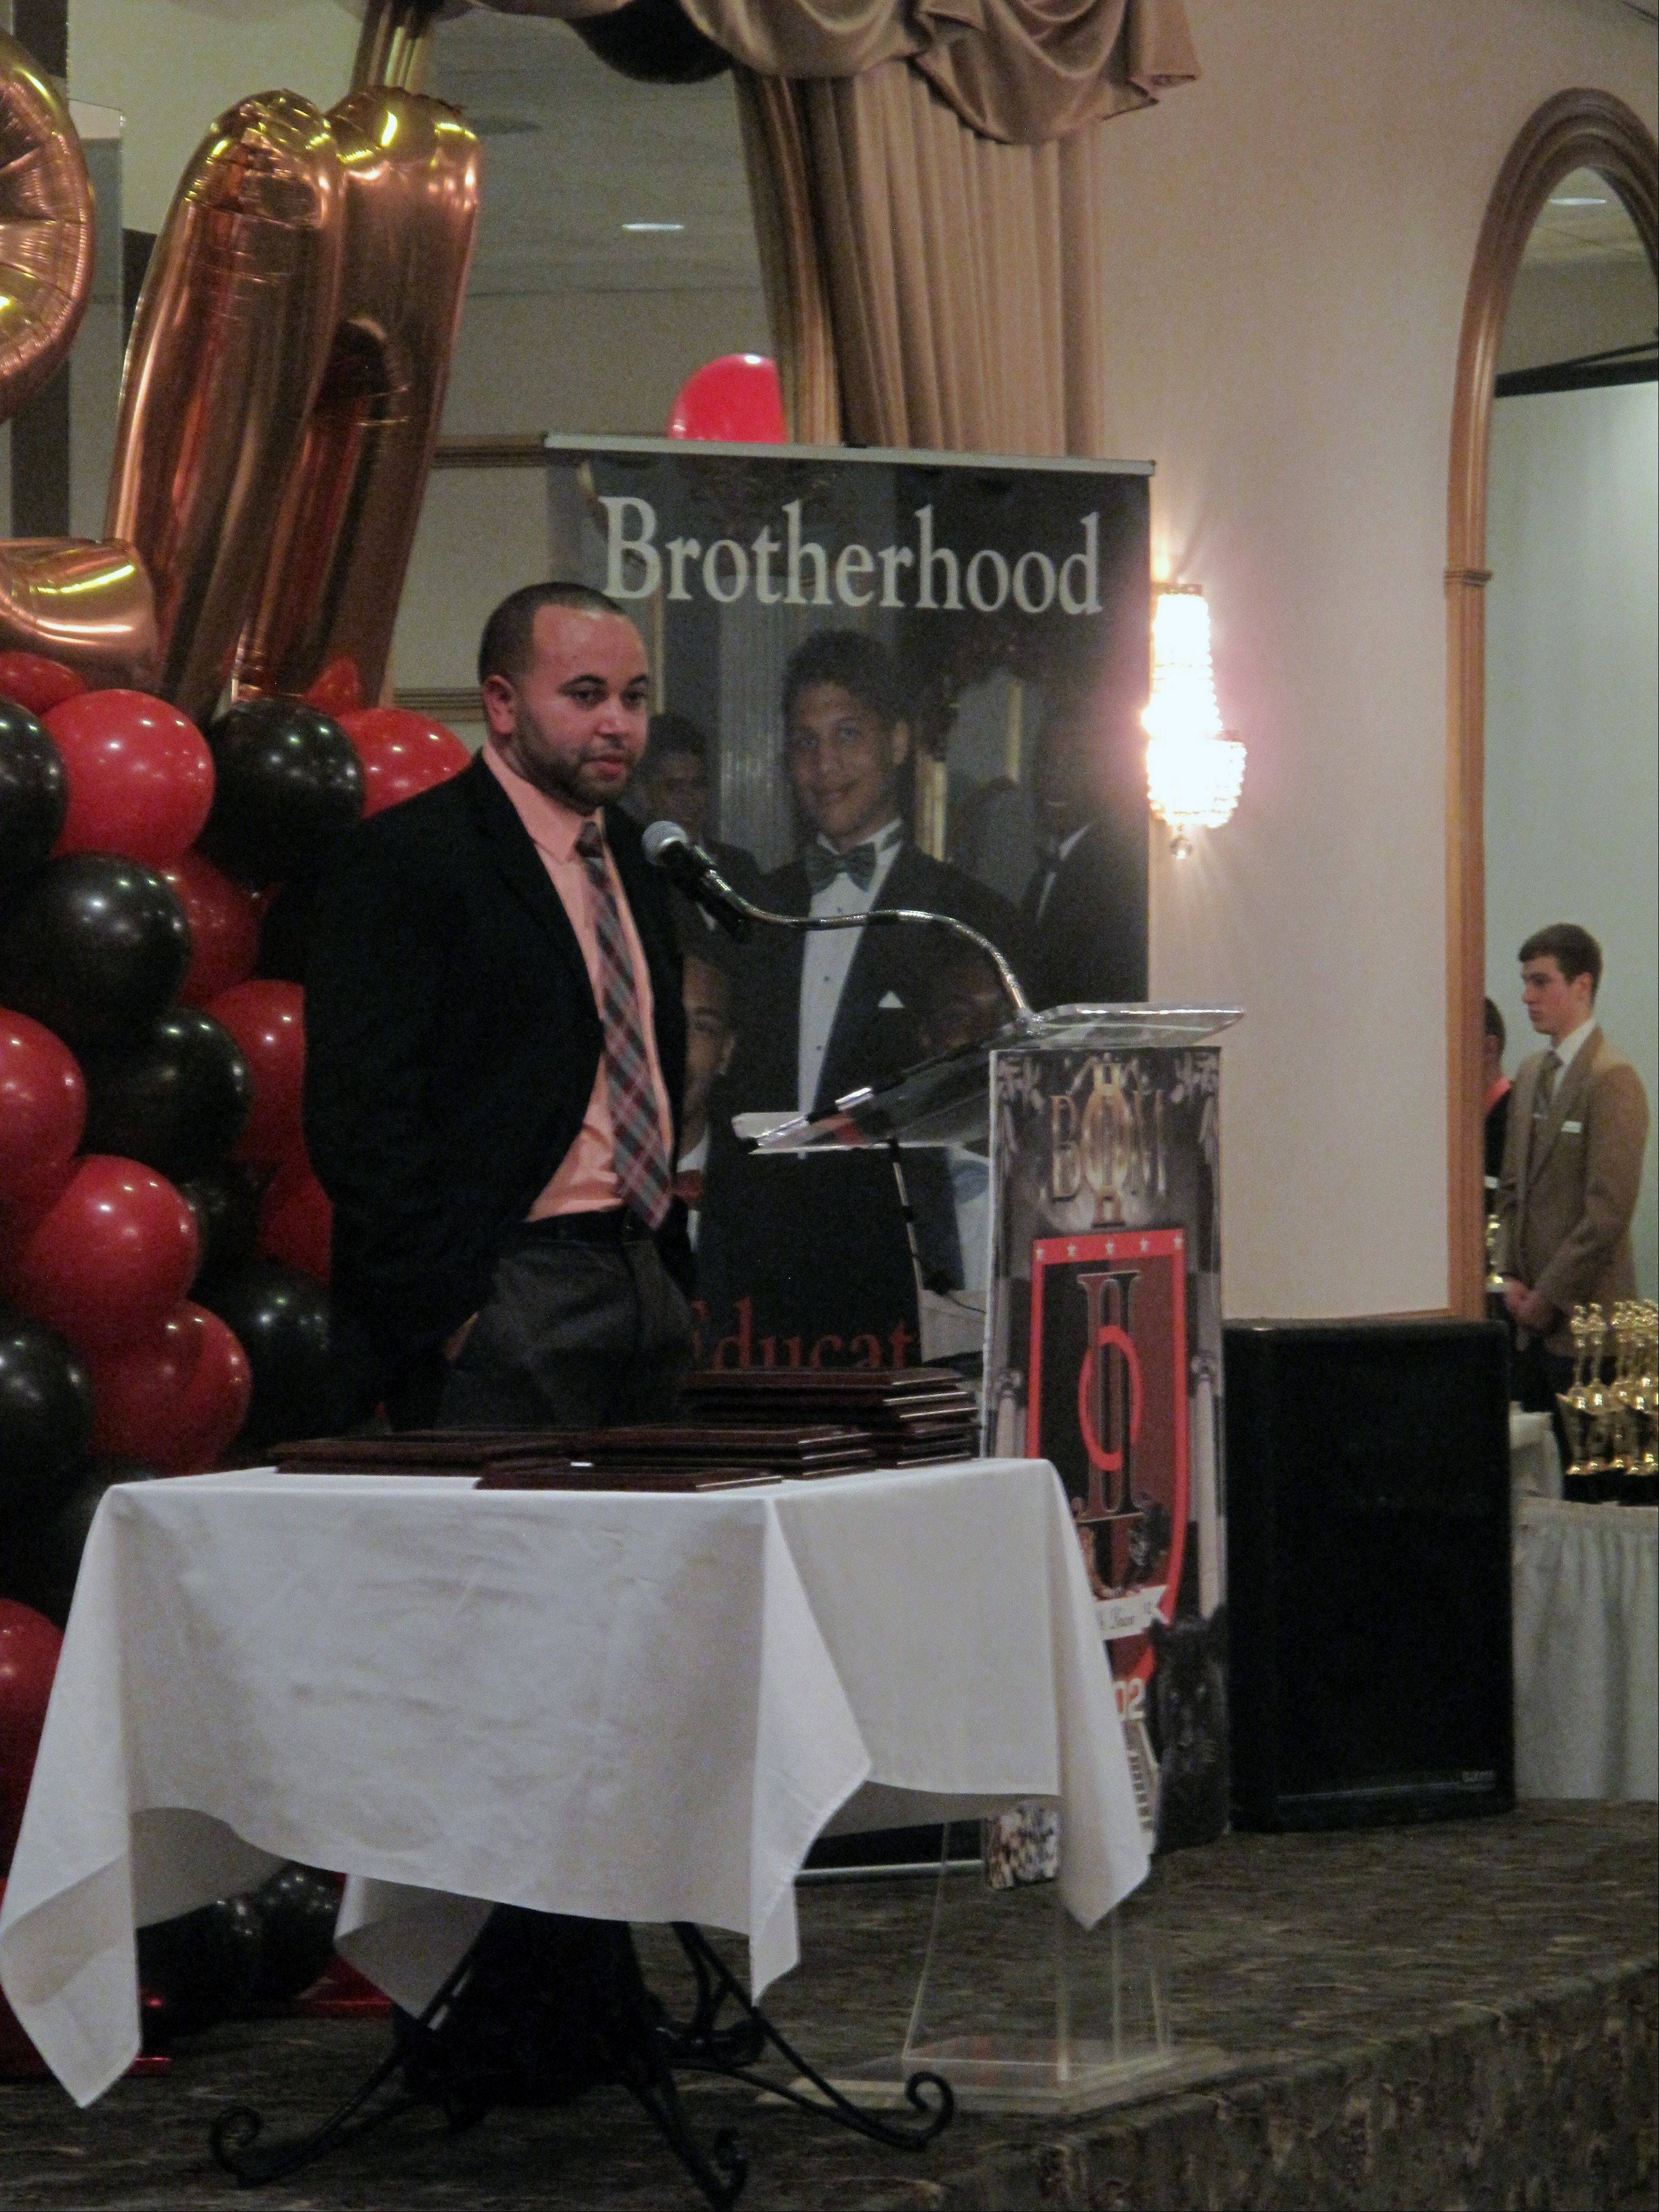 Jared Marchiando, the first president of the Boys II Men brotherhood in Aurora, is honored as one of the fraternity�s 2013 Phenomenal Men of the Year. The brotherhood has included more than 200 members since Marchiando was among its 12 founding members in 2002.